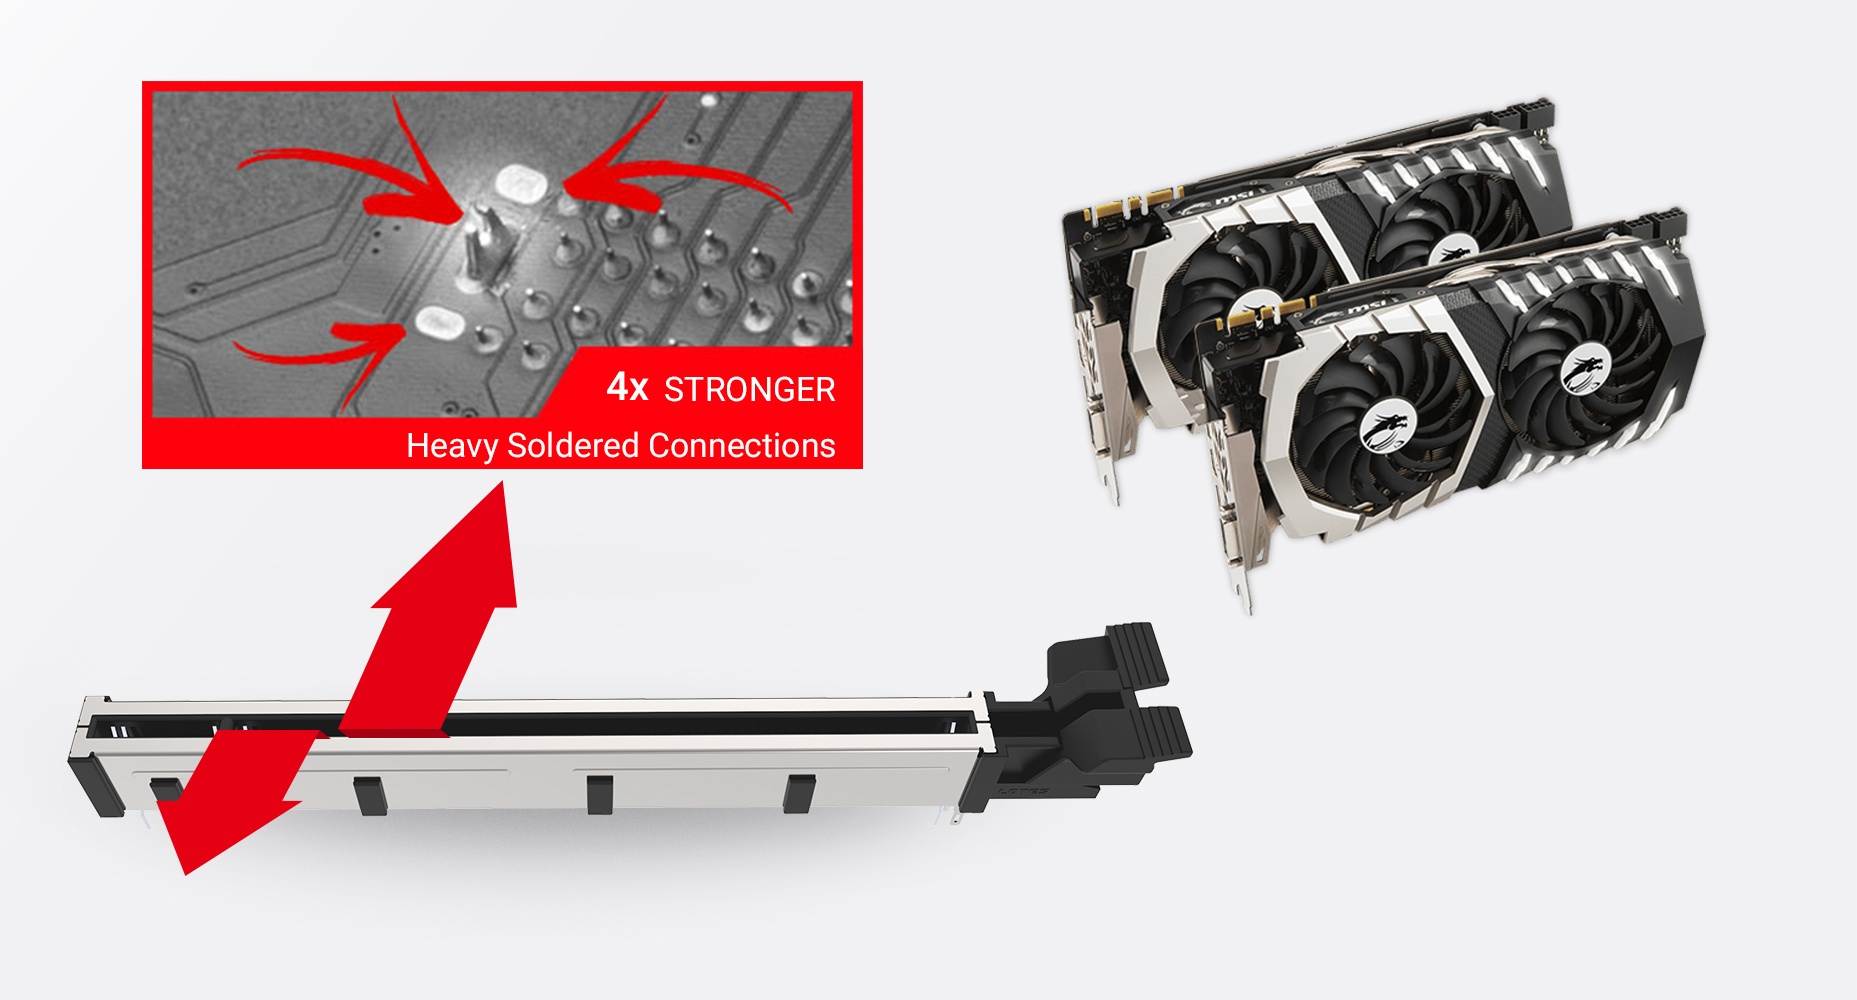 MSI MAG B550M MORTAR MULTIPLE GPU SUPPORTS AND STEEL ARMOR